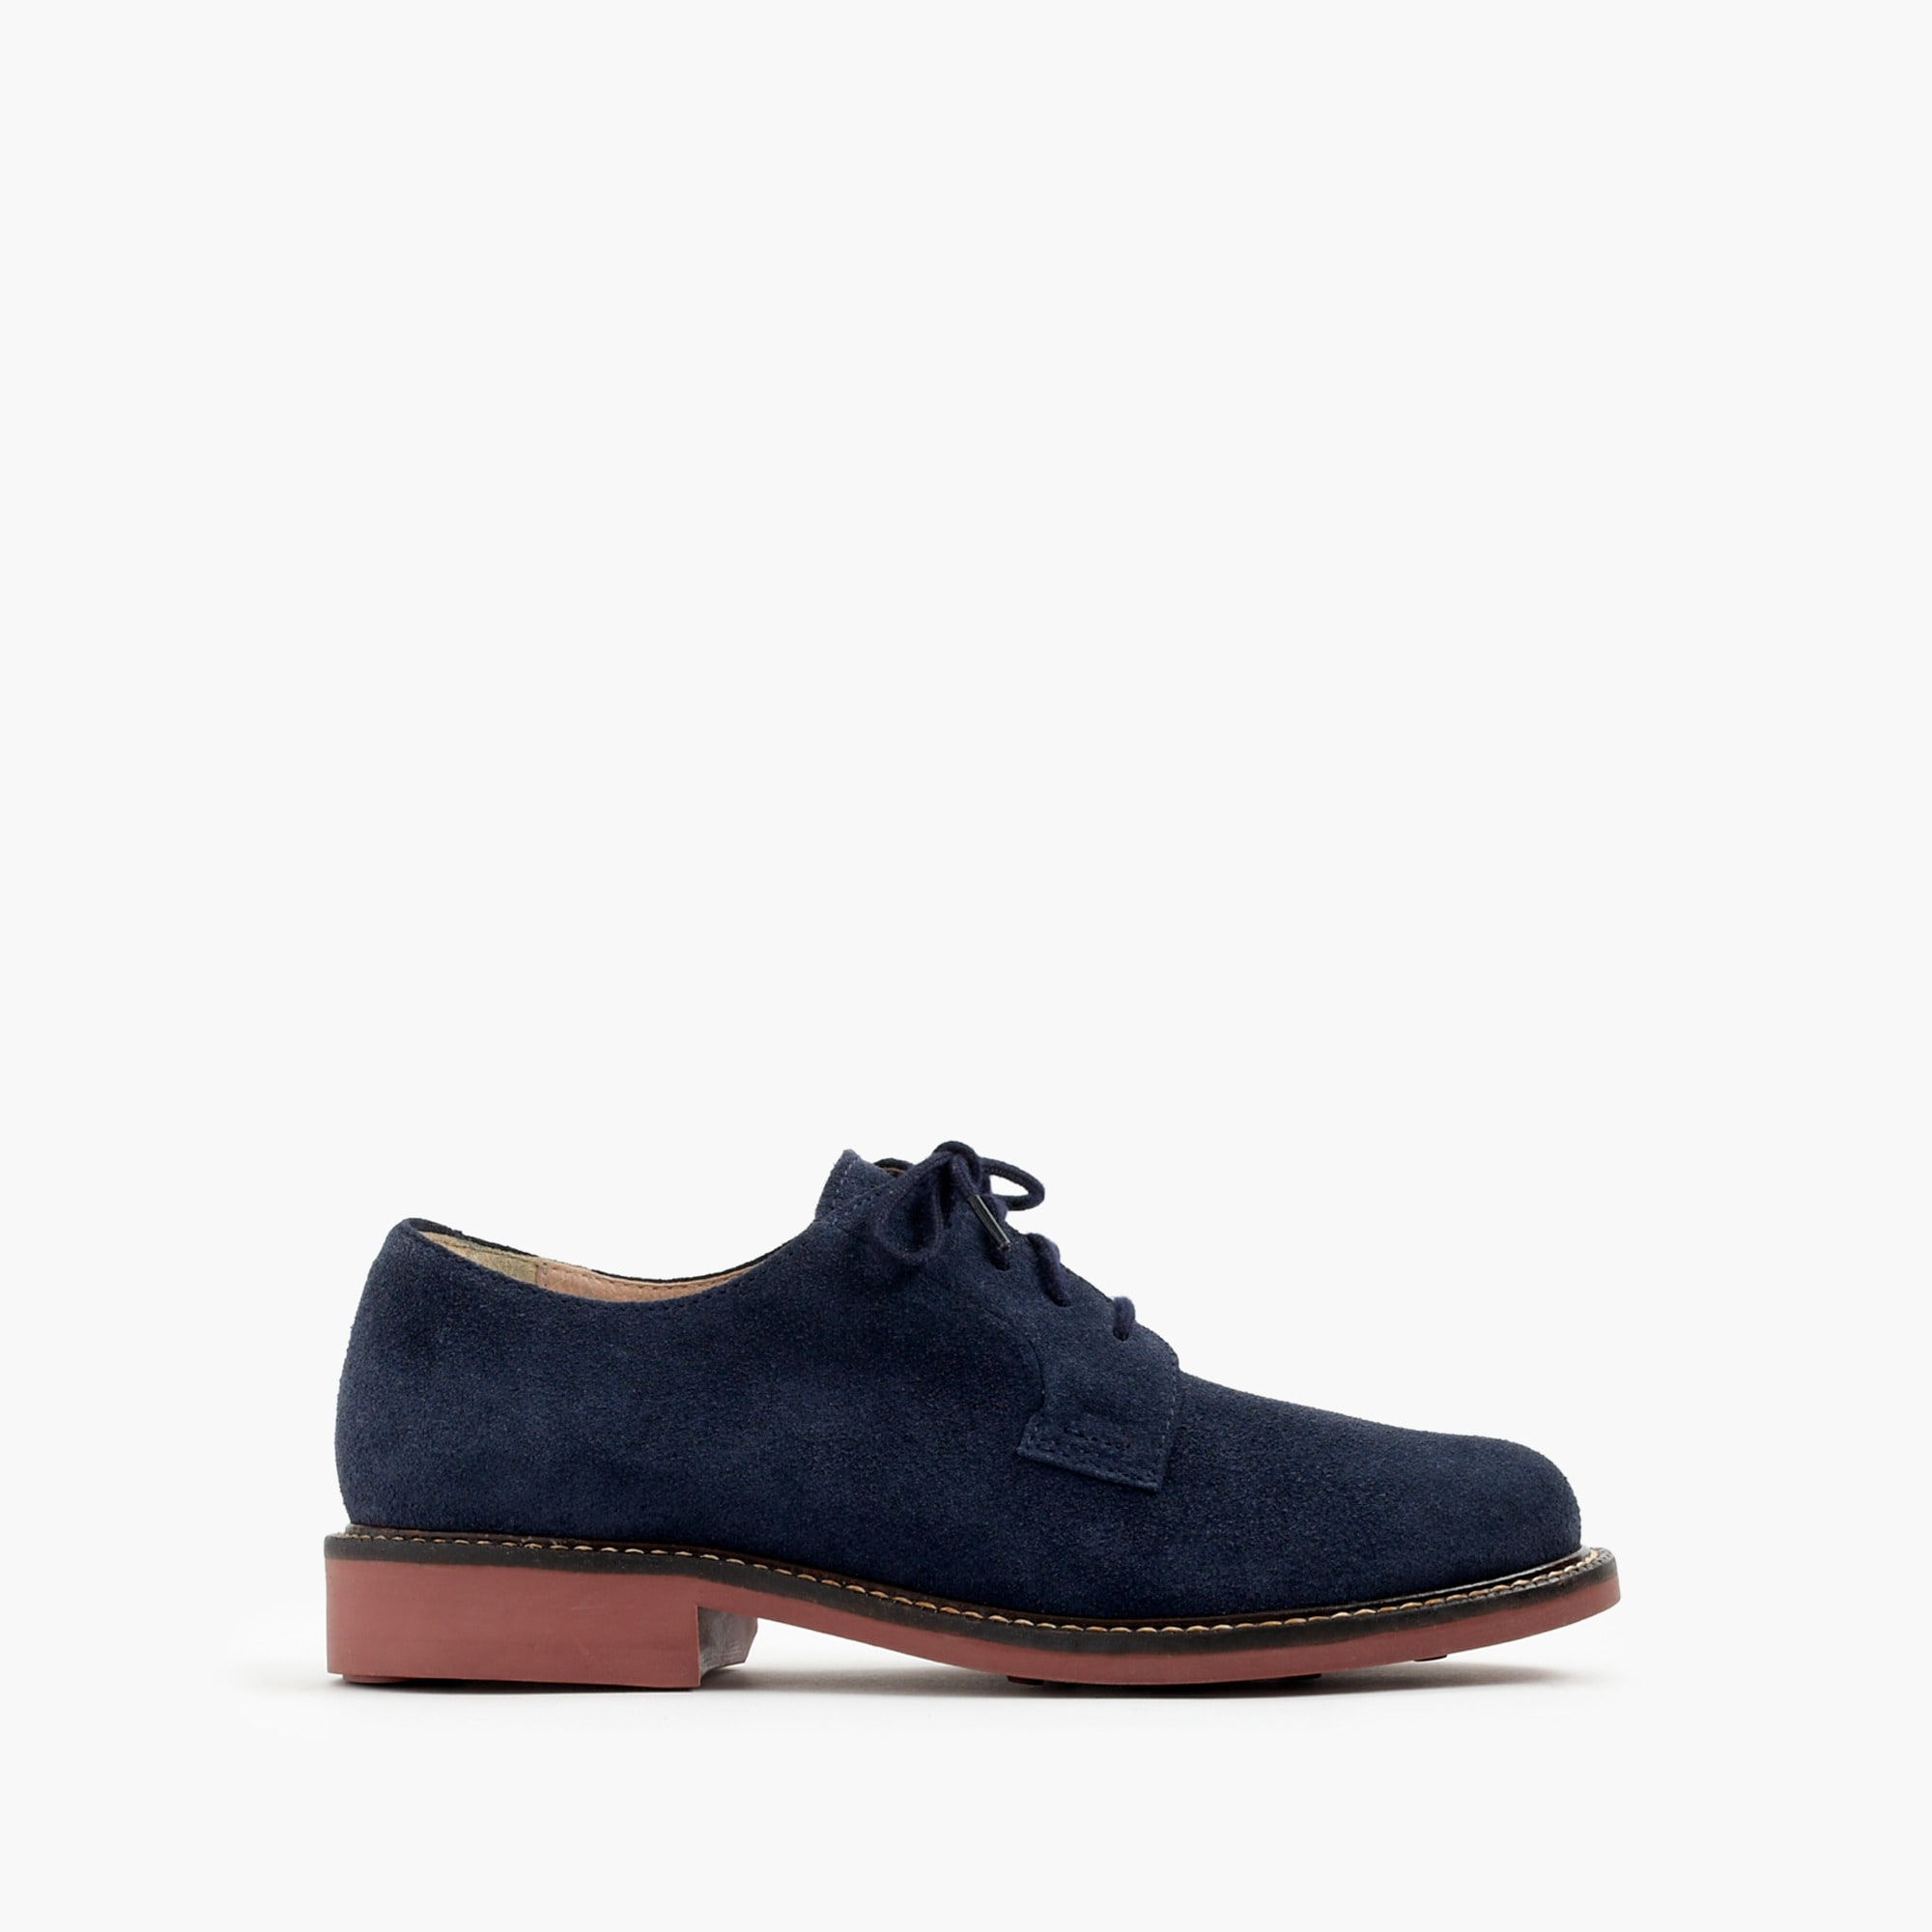 Image 1 for Kids' suede buck with contrast sole